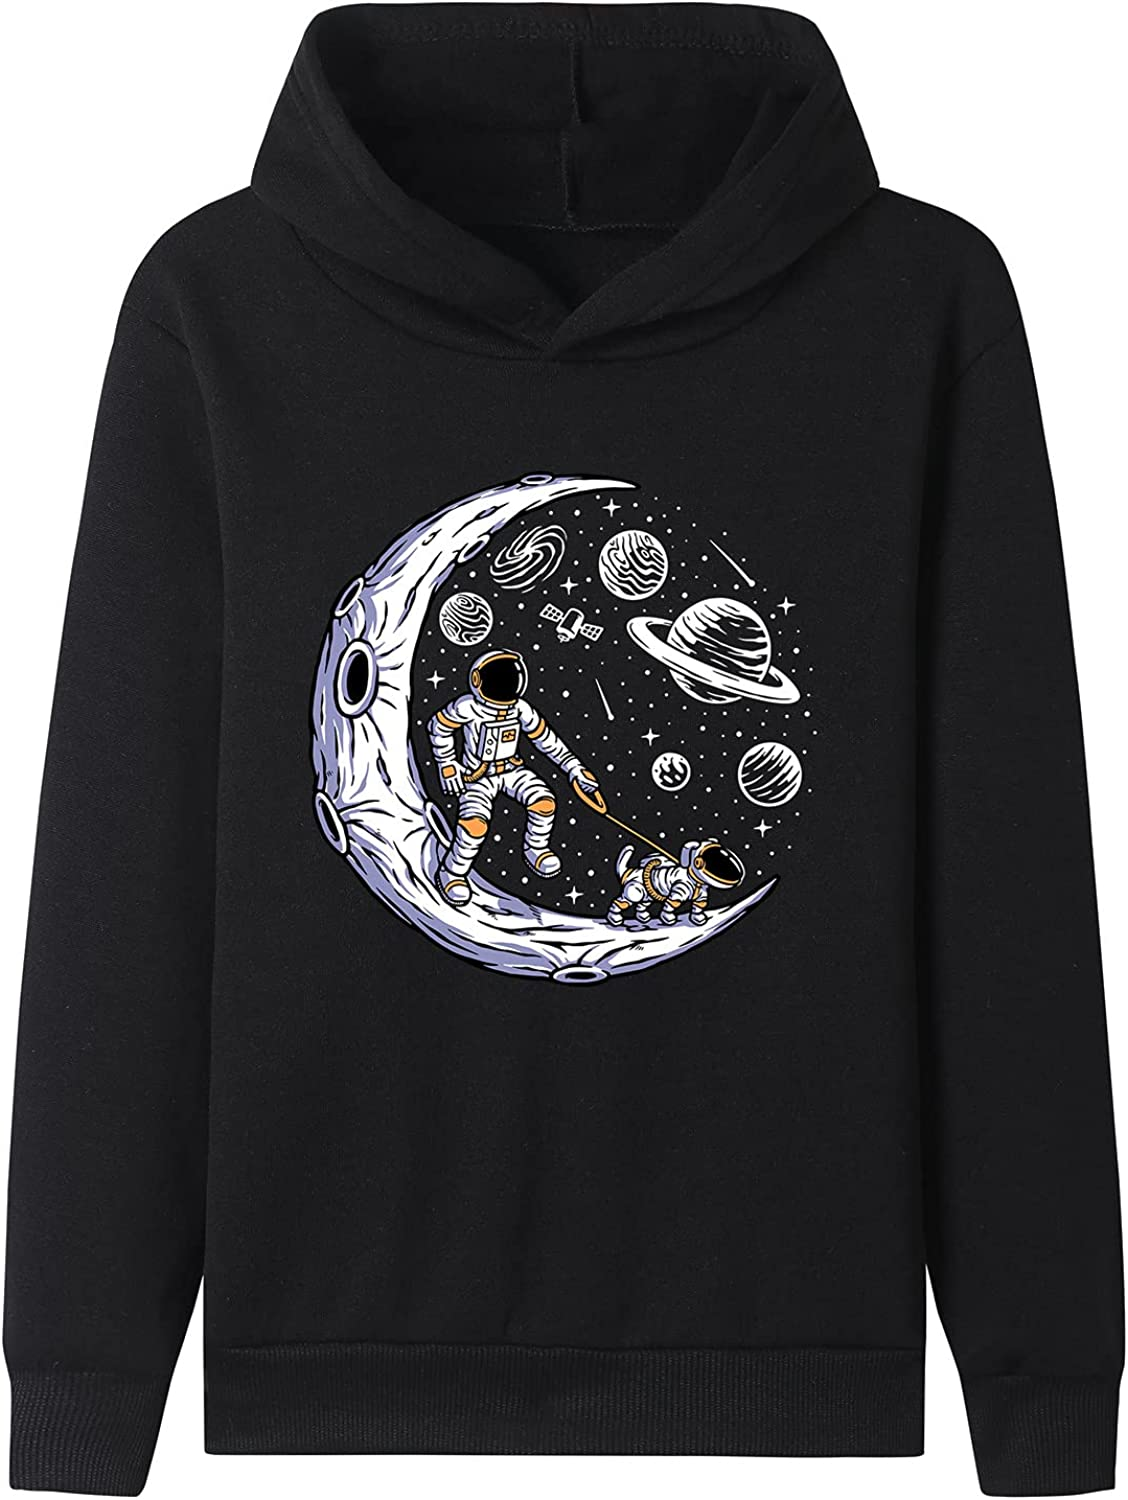 Space Dog Memphis Mall Kids Hoodies 5-13 Years) Black Youth Sudadera Free Shipping New